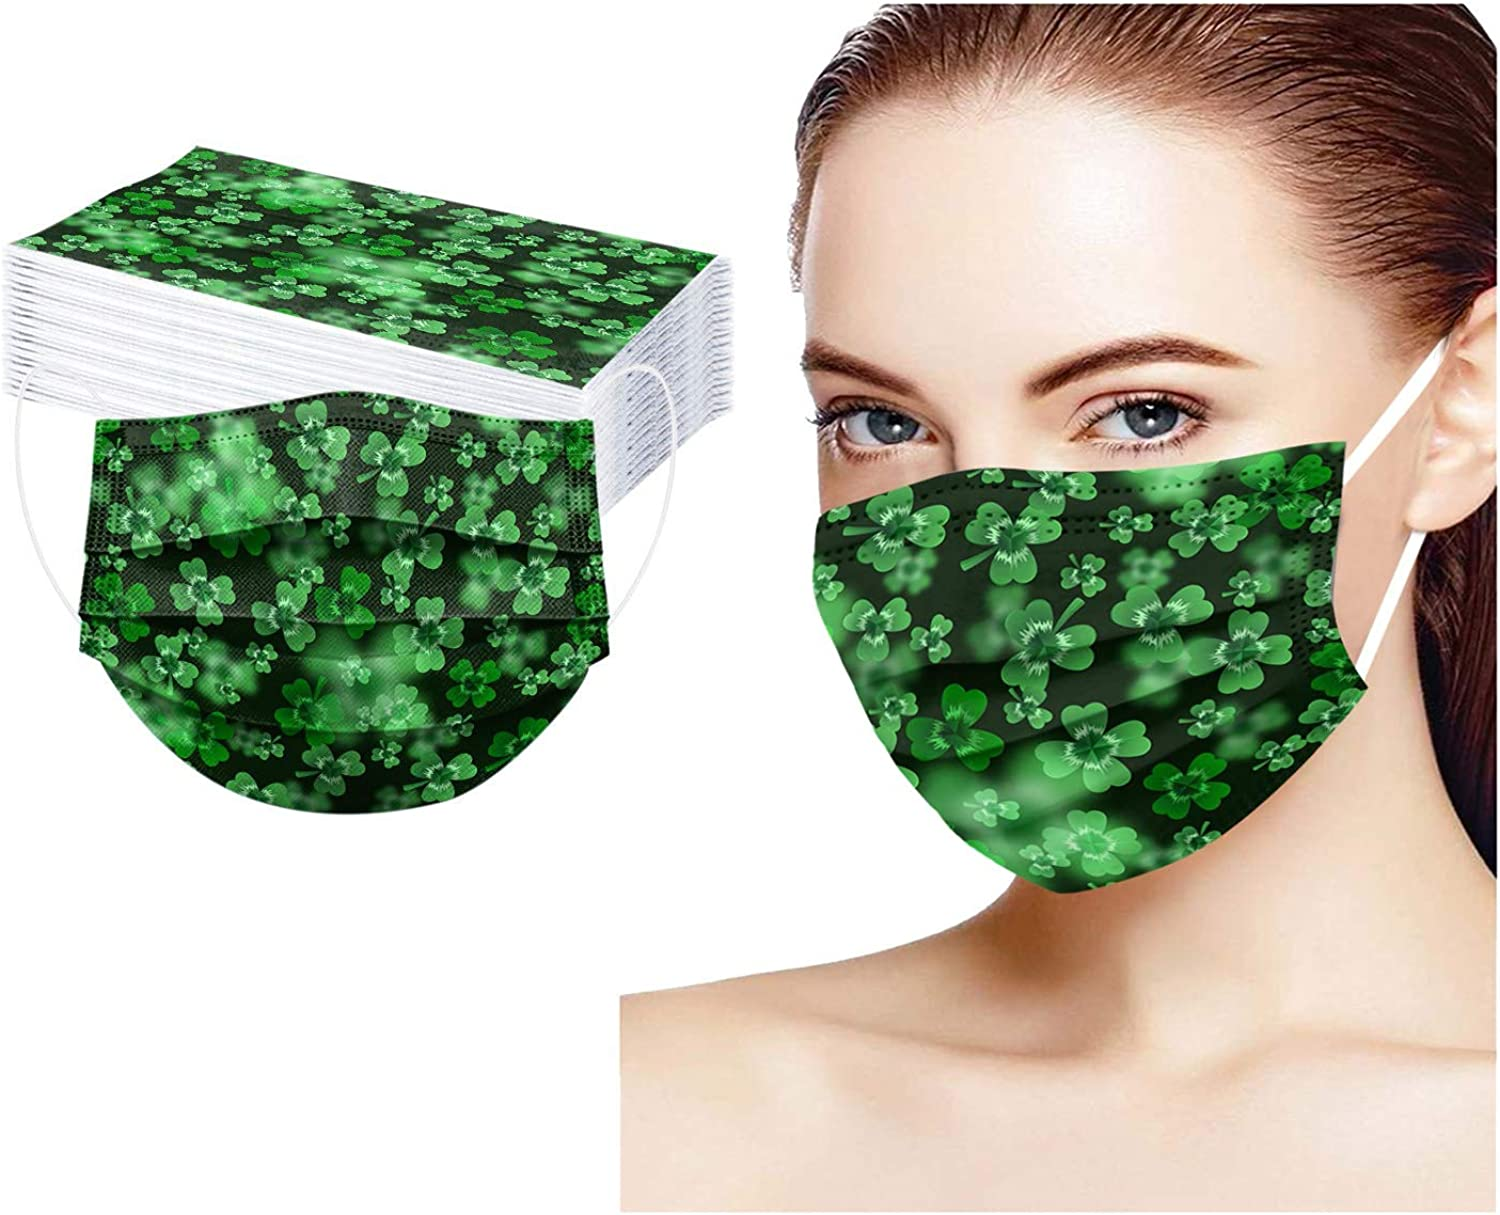 St. Beauty products Patrick's Day Disposable Face Mask Green Clover San Jose Mall Four Leaves